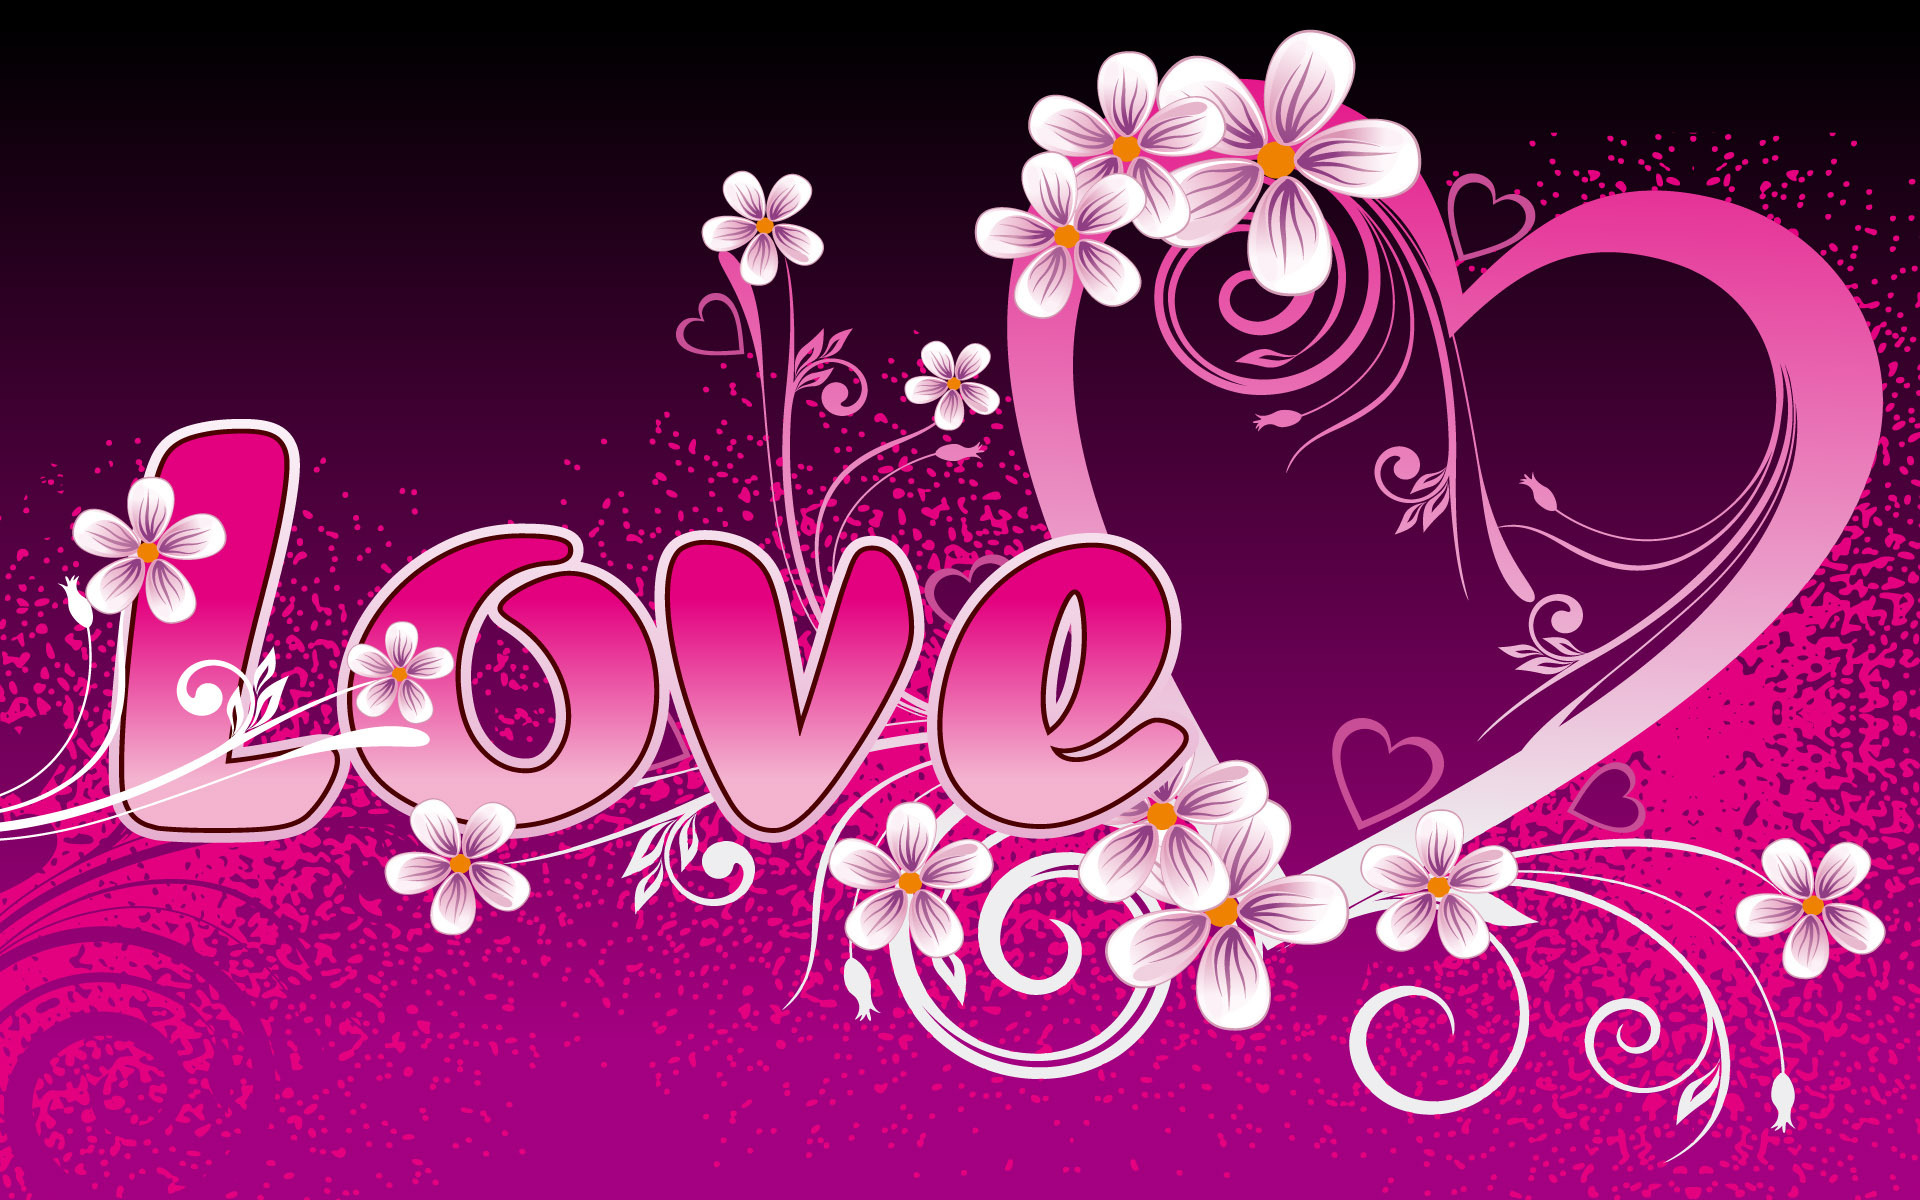 50 Lovely Wallpaper Of Love On Wallpapersafari